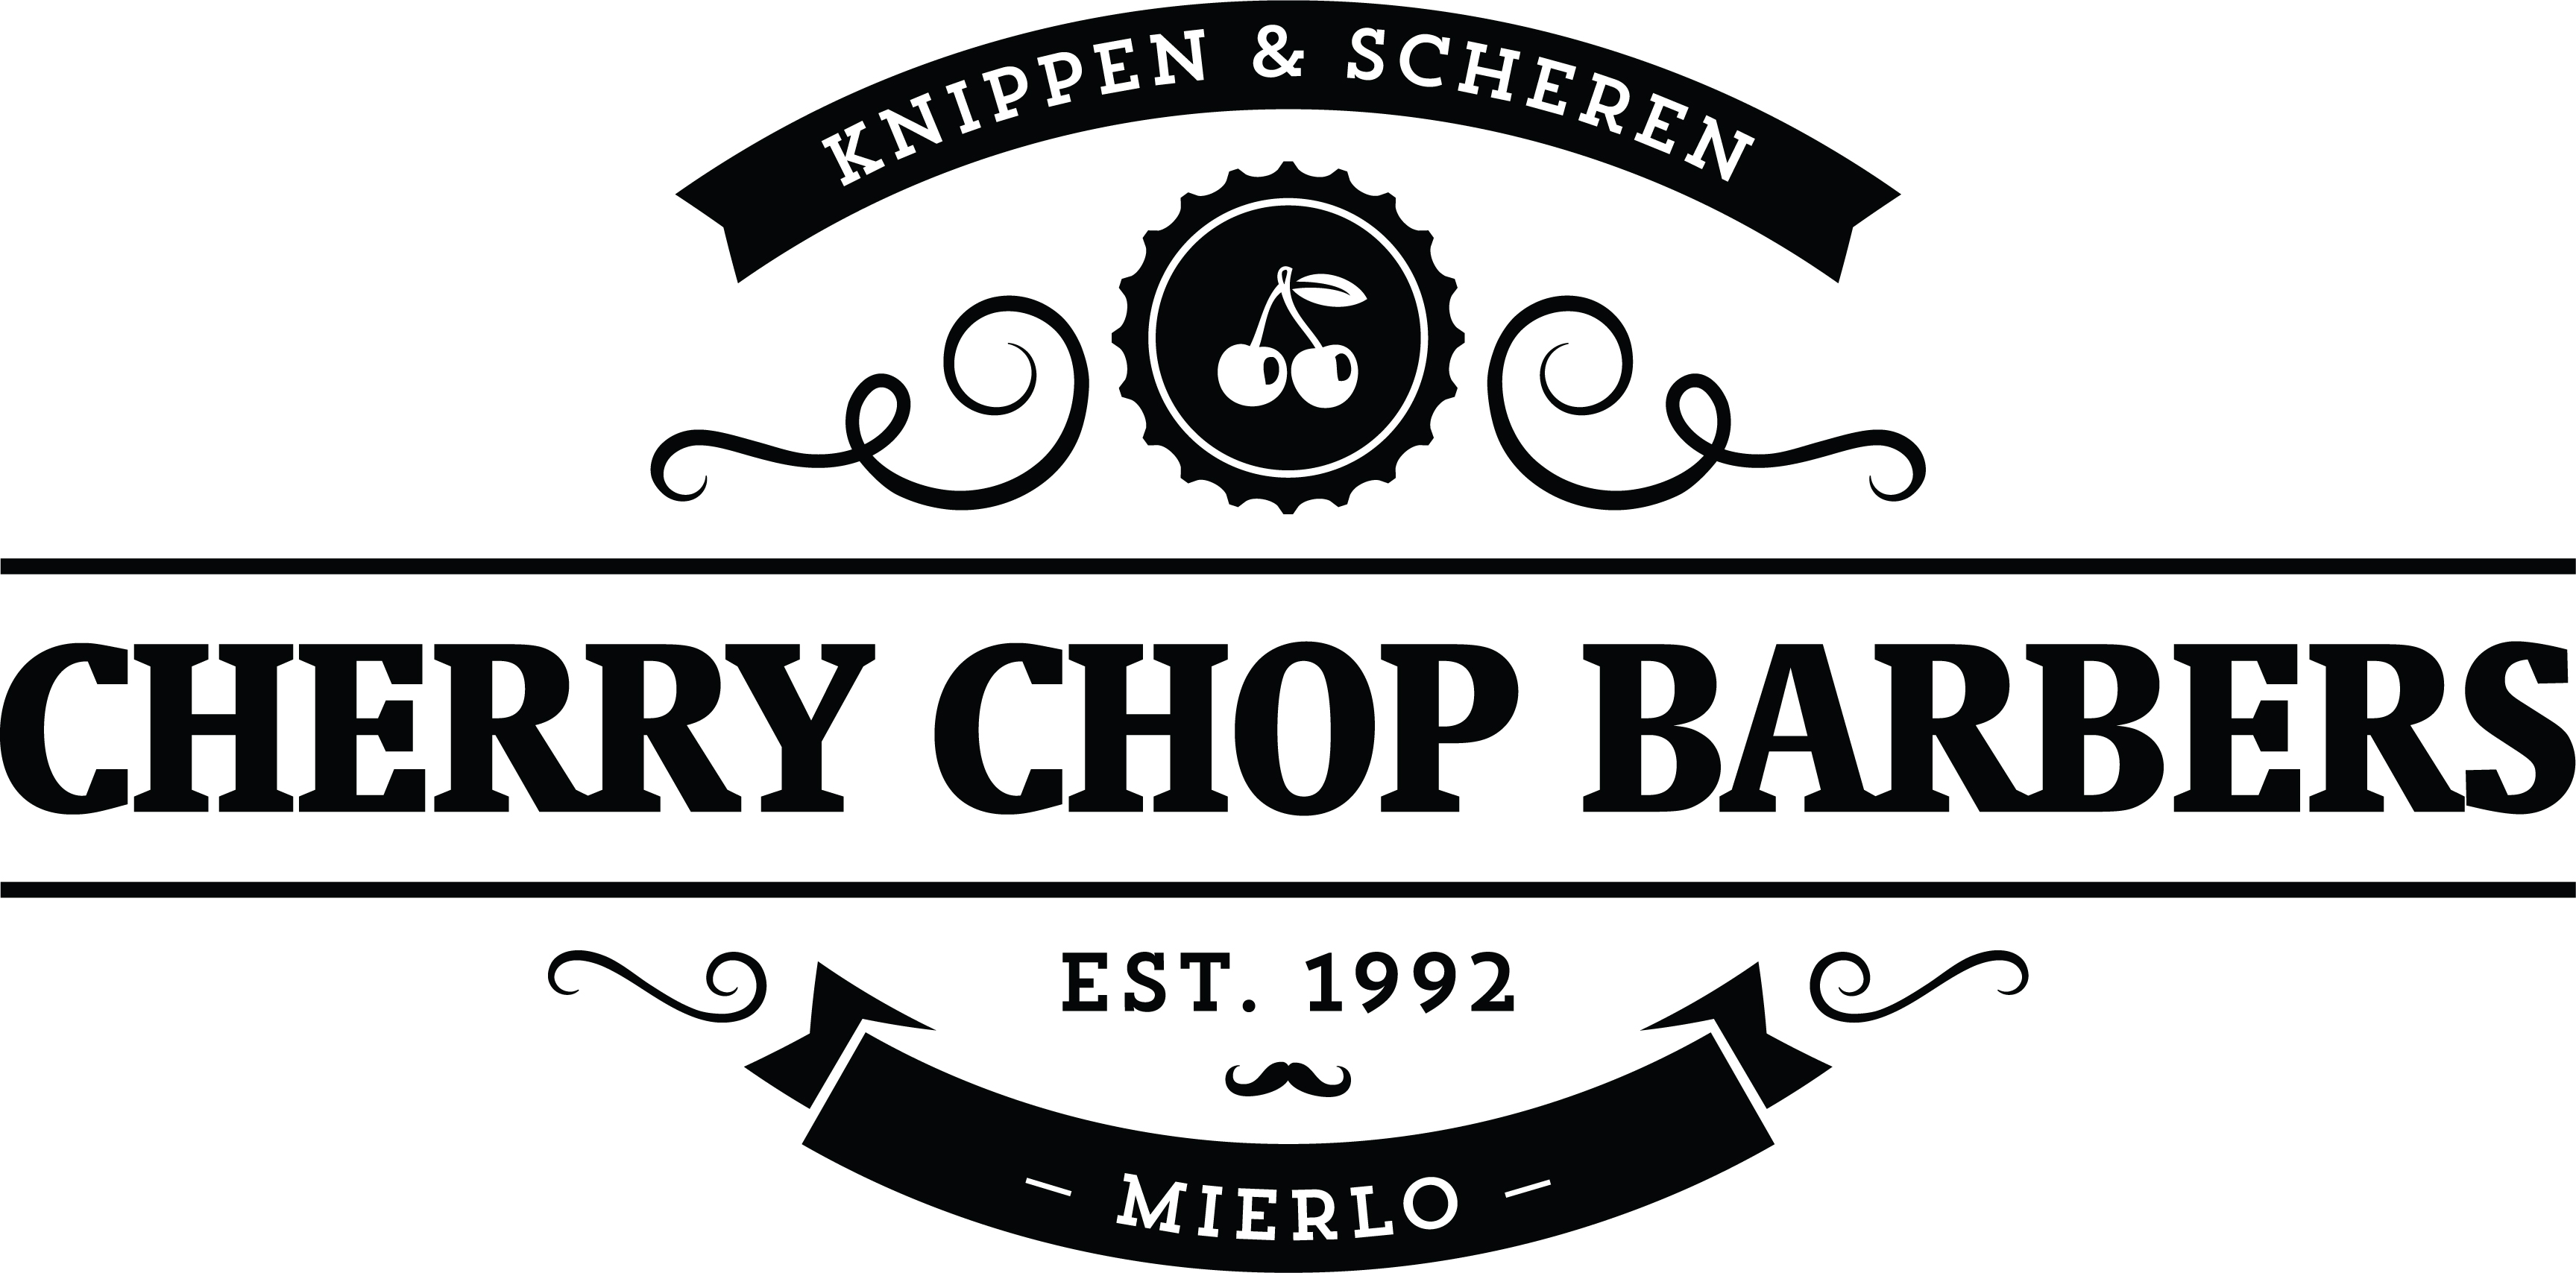 Cherry Chop Barbers